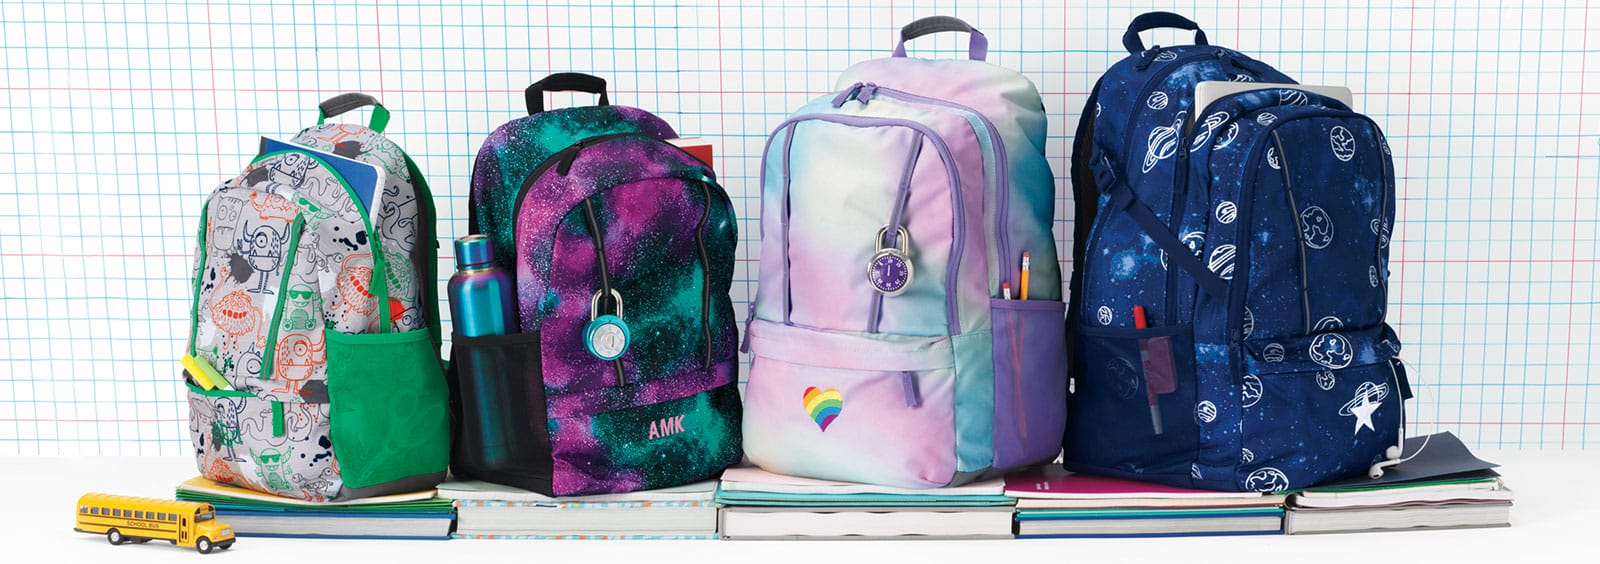 How to Care for your Backpack| Washable Backpacks at Lands' End